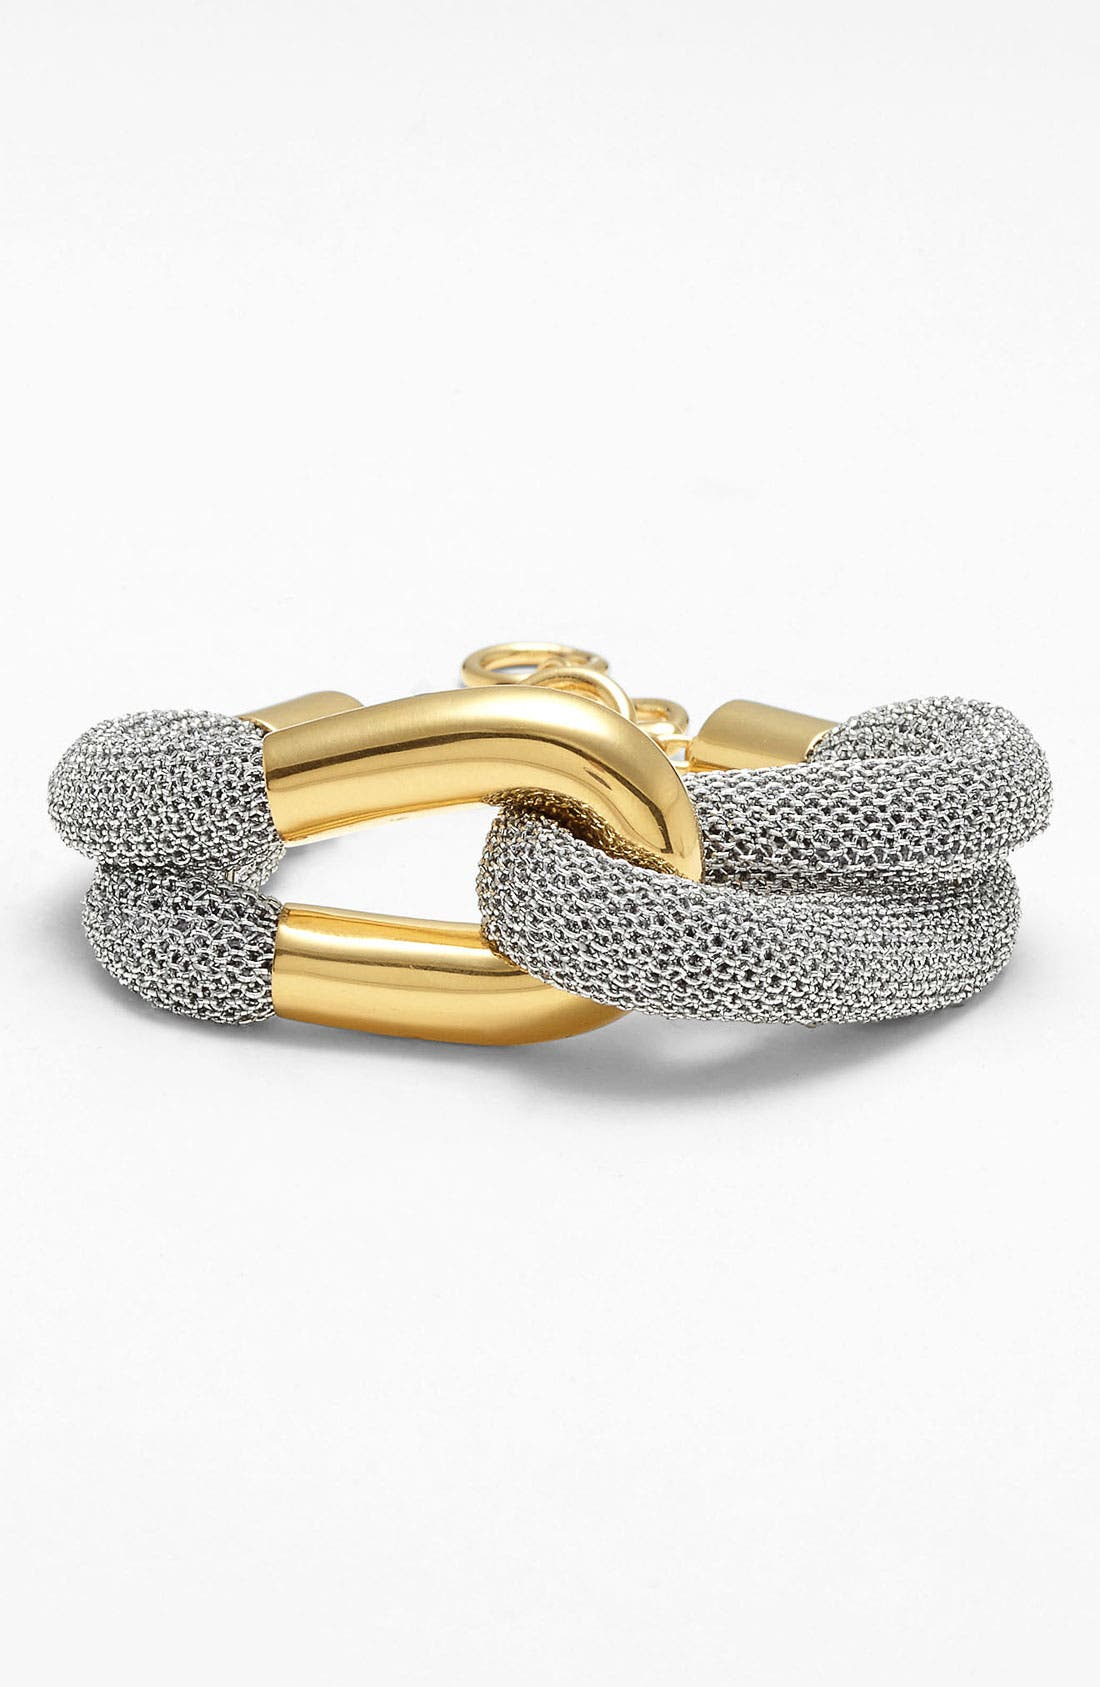 Alternate Image 1 Selected - Adami & Martucci 'Mesh' Toggle Bracelet (Nordstrom Exclusive)